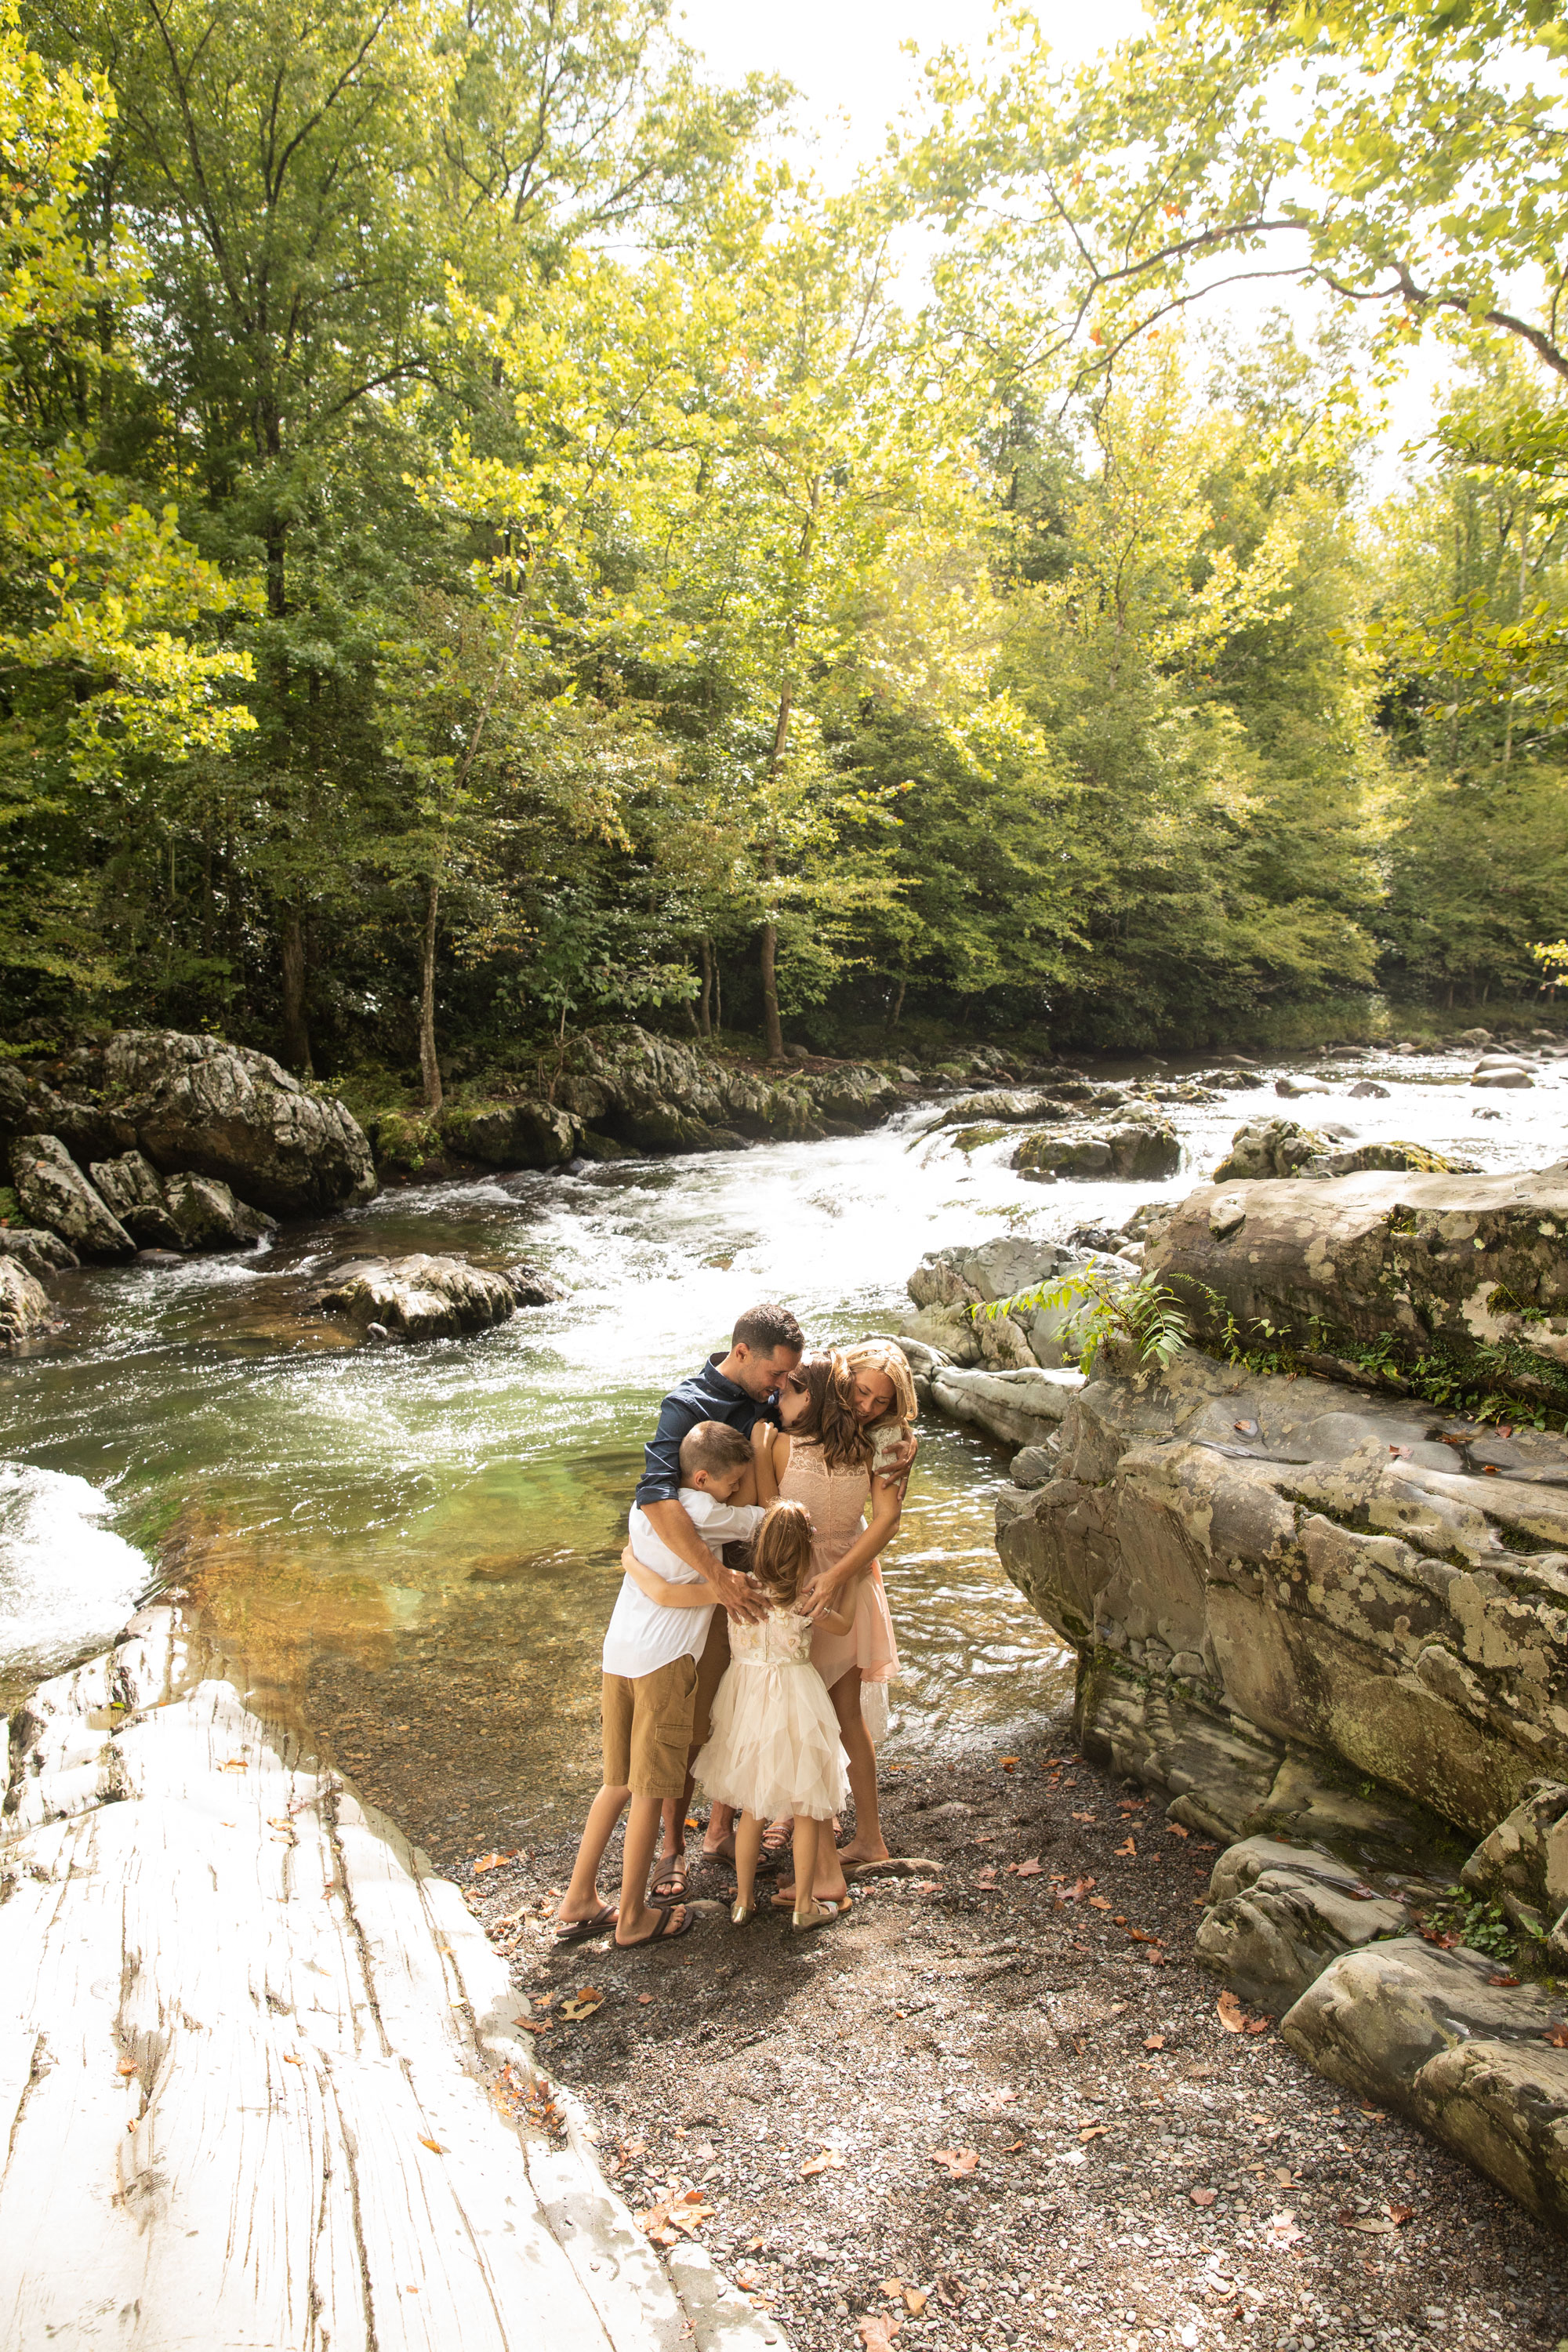 gatlinburg-tn-elope-family-hug-after-i-do.jpg